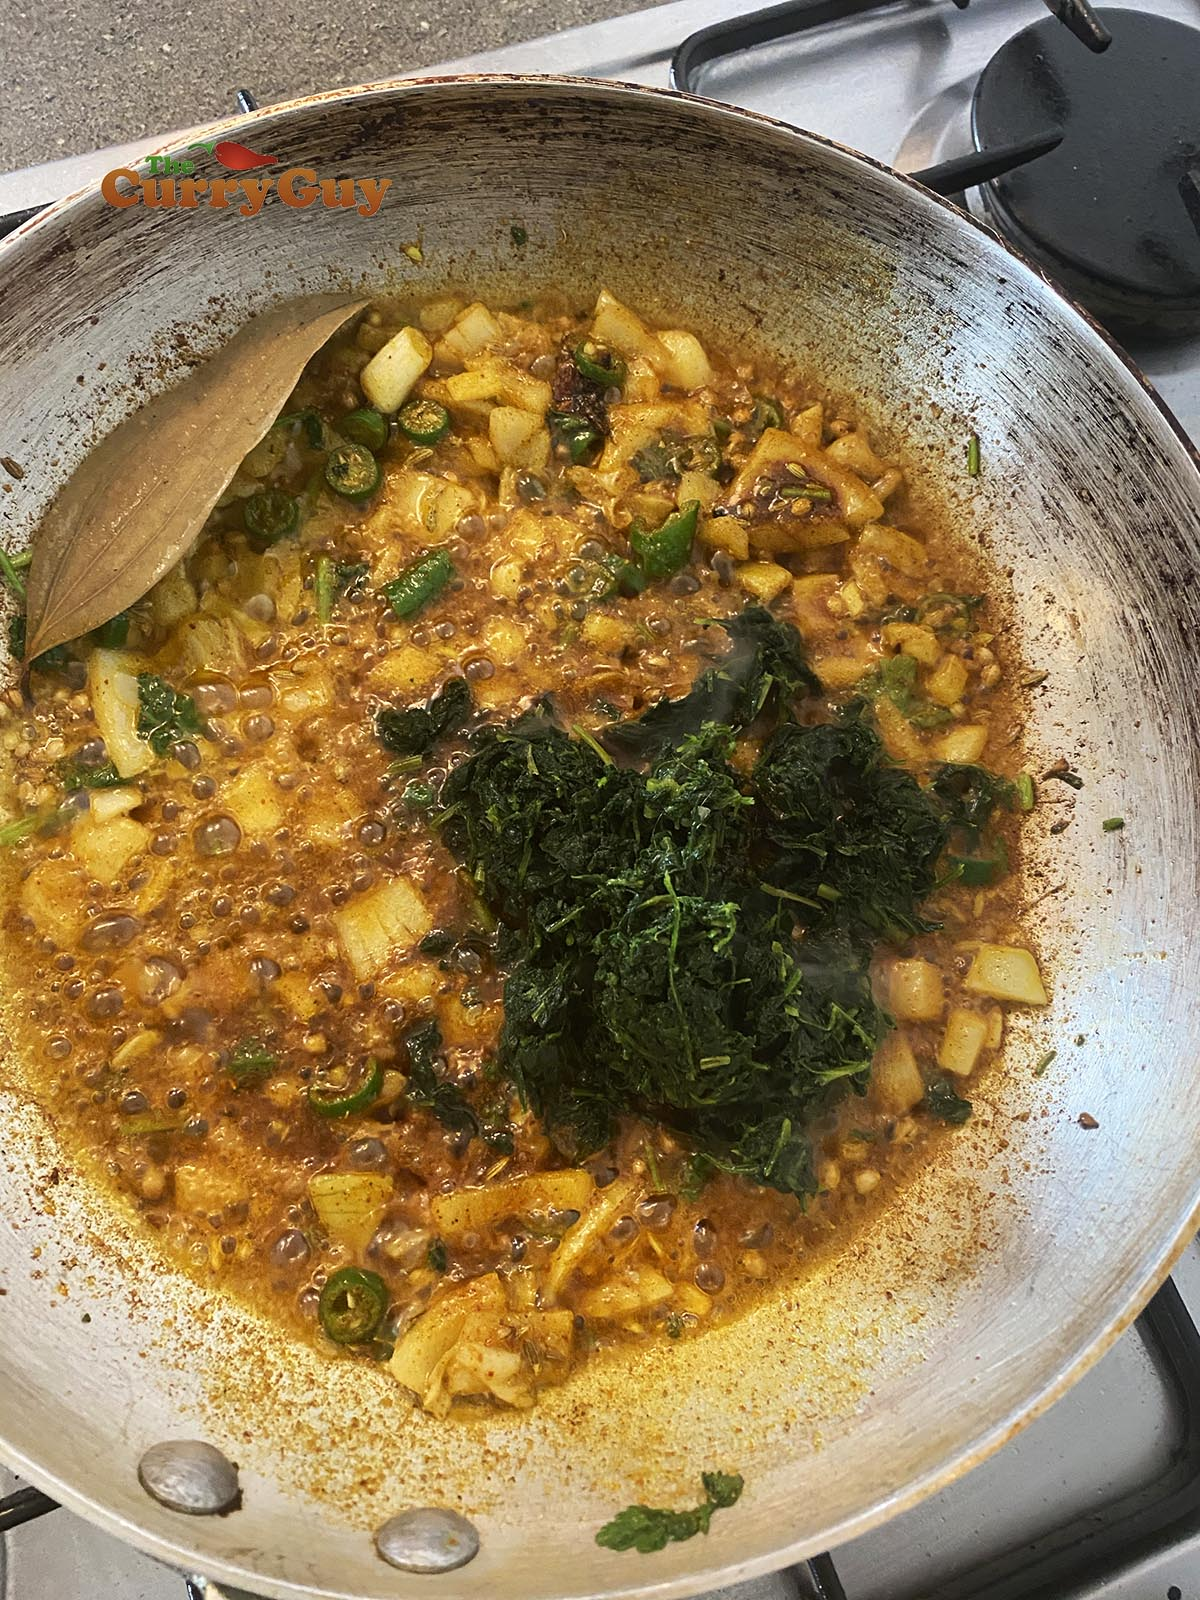 Adding methi to curry.